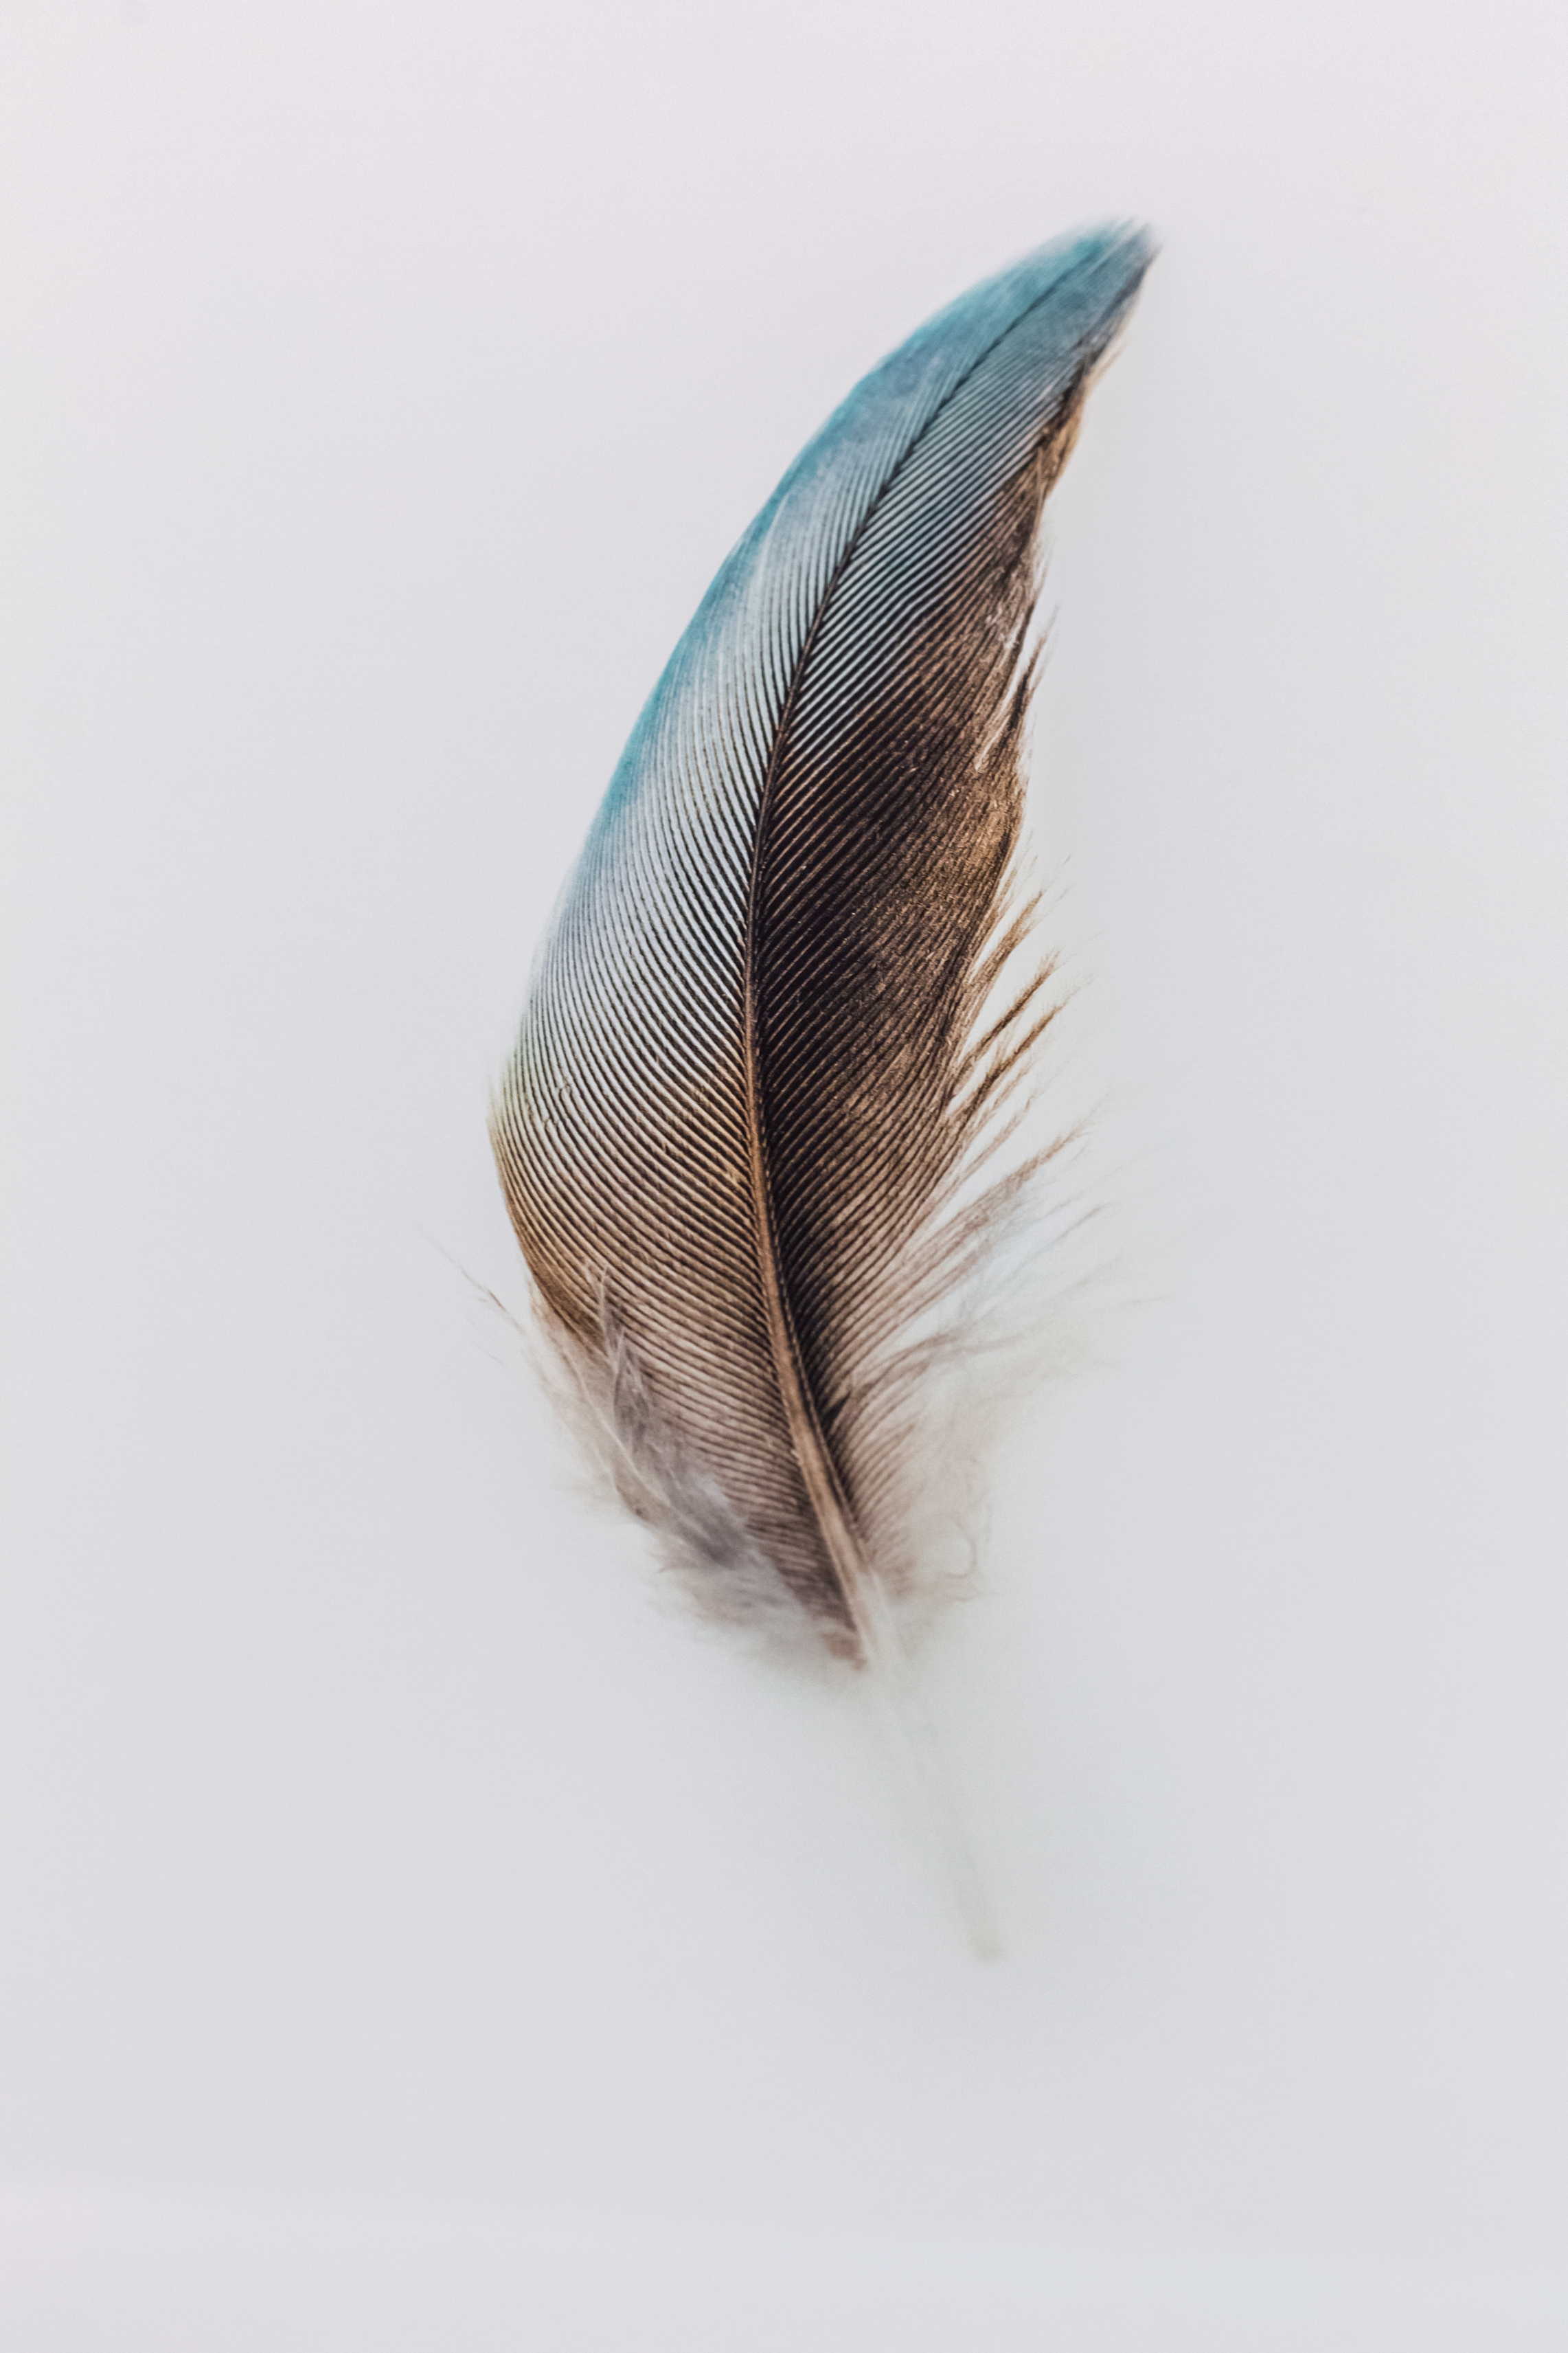 A Feather Studies Image for Tiffany & Co. Sydney by Jared Fowler.  Image Credit: Jodie Barker.